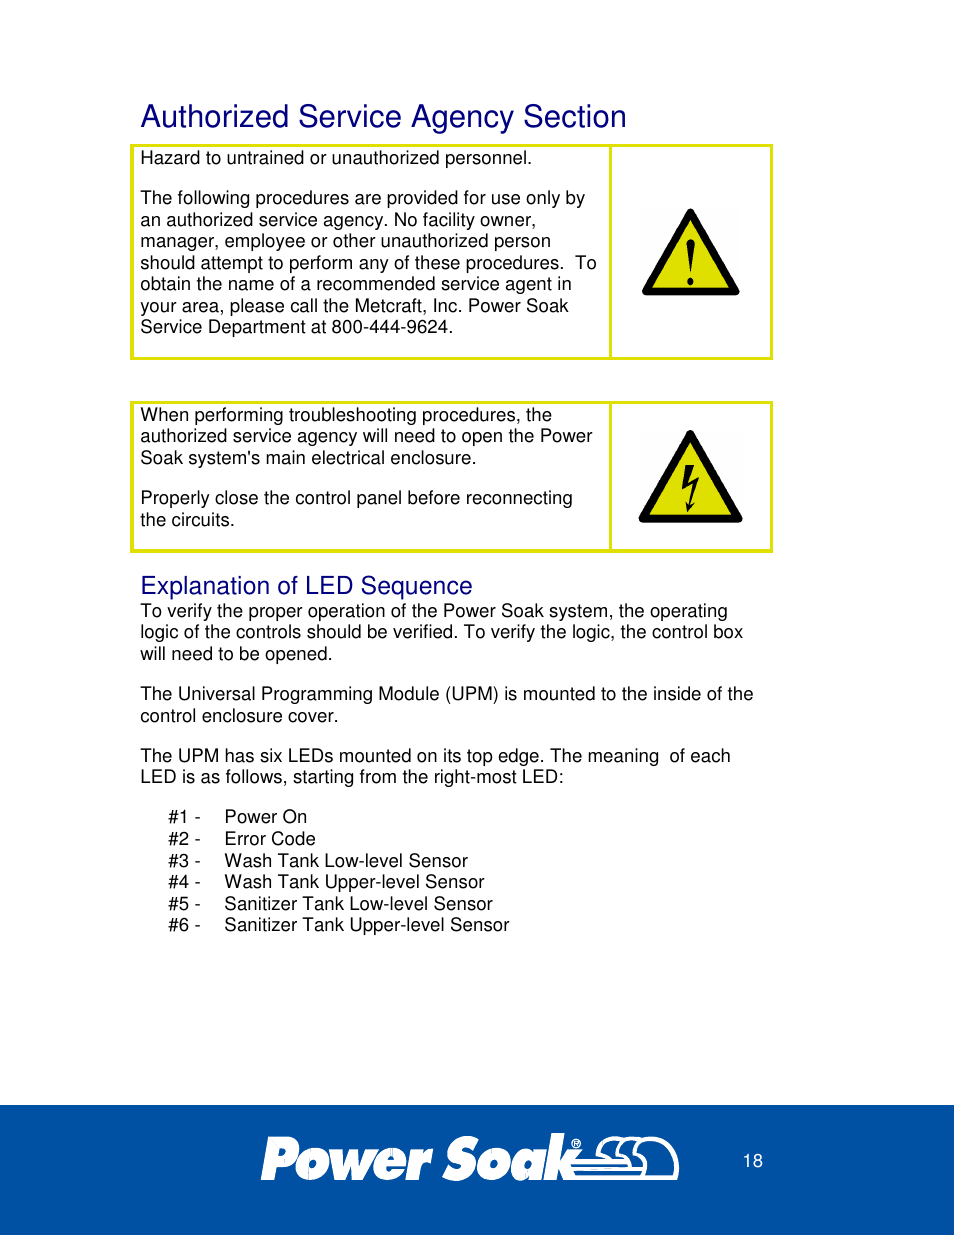 Explanation of led sequence power soak 27746 ps 200 owners manual explanation of led sequence power soak 27746 ps 200 owners manual user manual page 22 28 publicscrutiny Choice Image